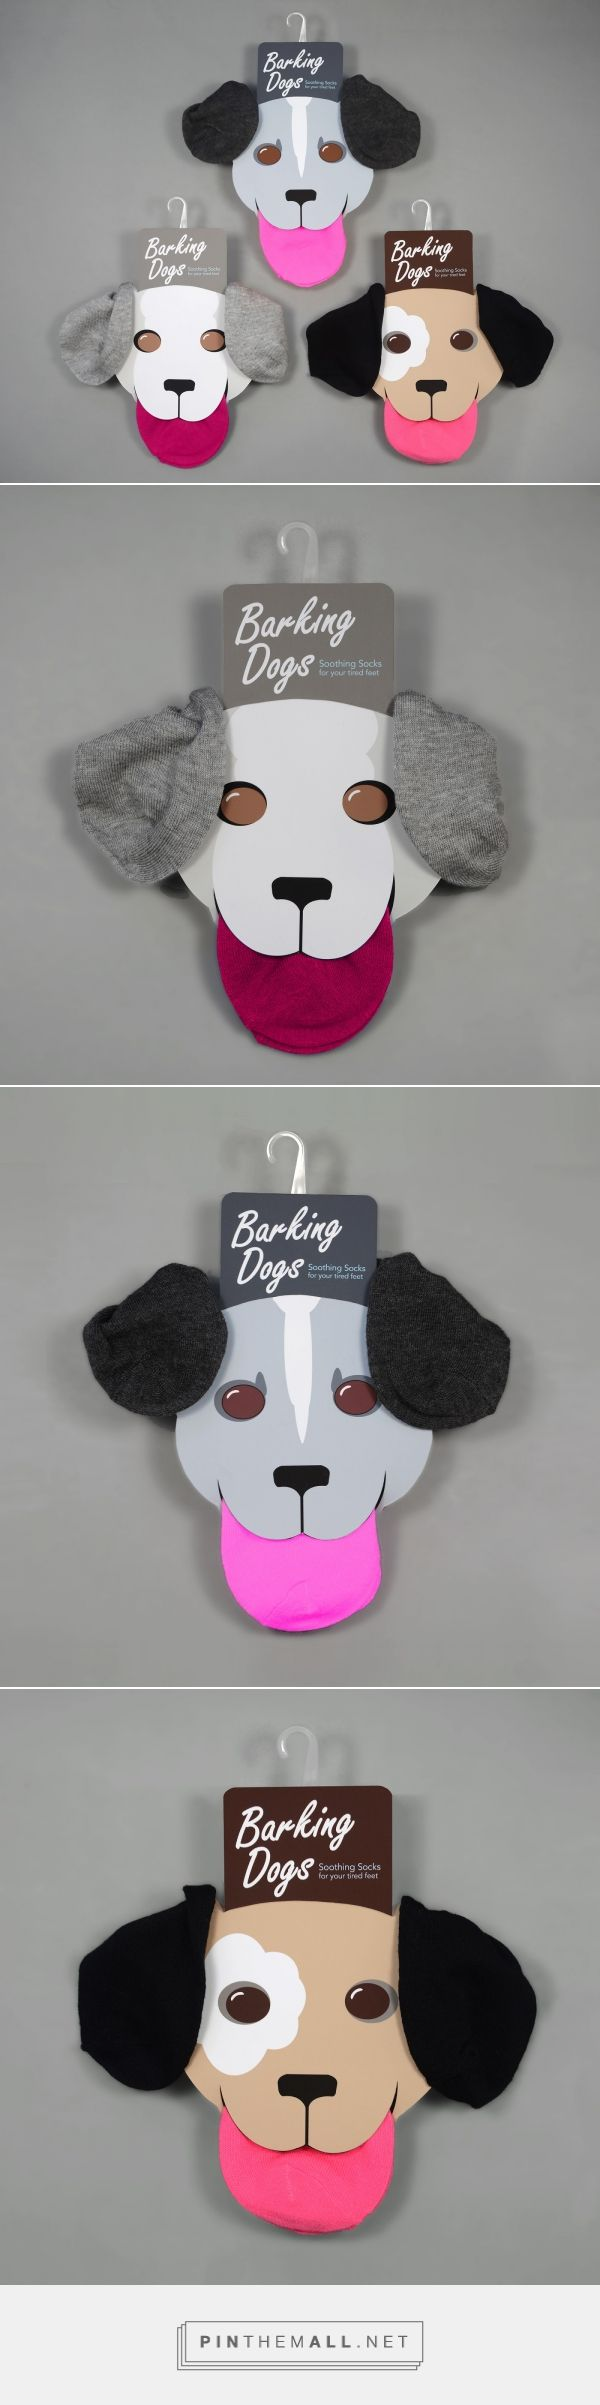 Barking Dogs Soothing Socks - Packaging of the World - Creative Package Design Gallery - http://www.packagingoftheworld.com/2016/08/barking-dogs-soothing-socks.html